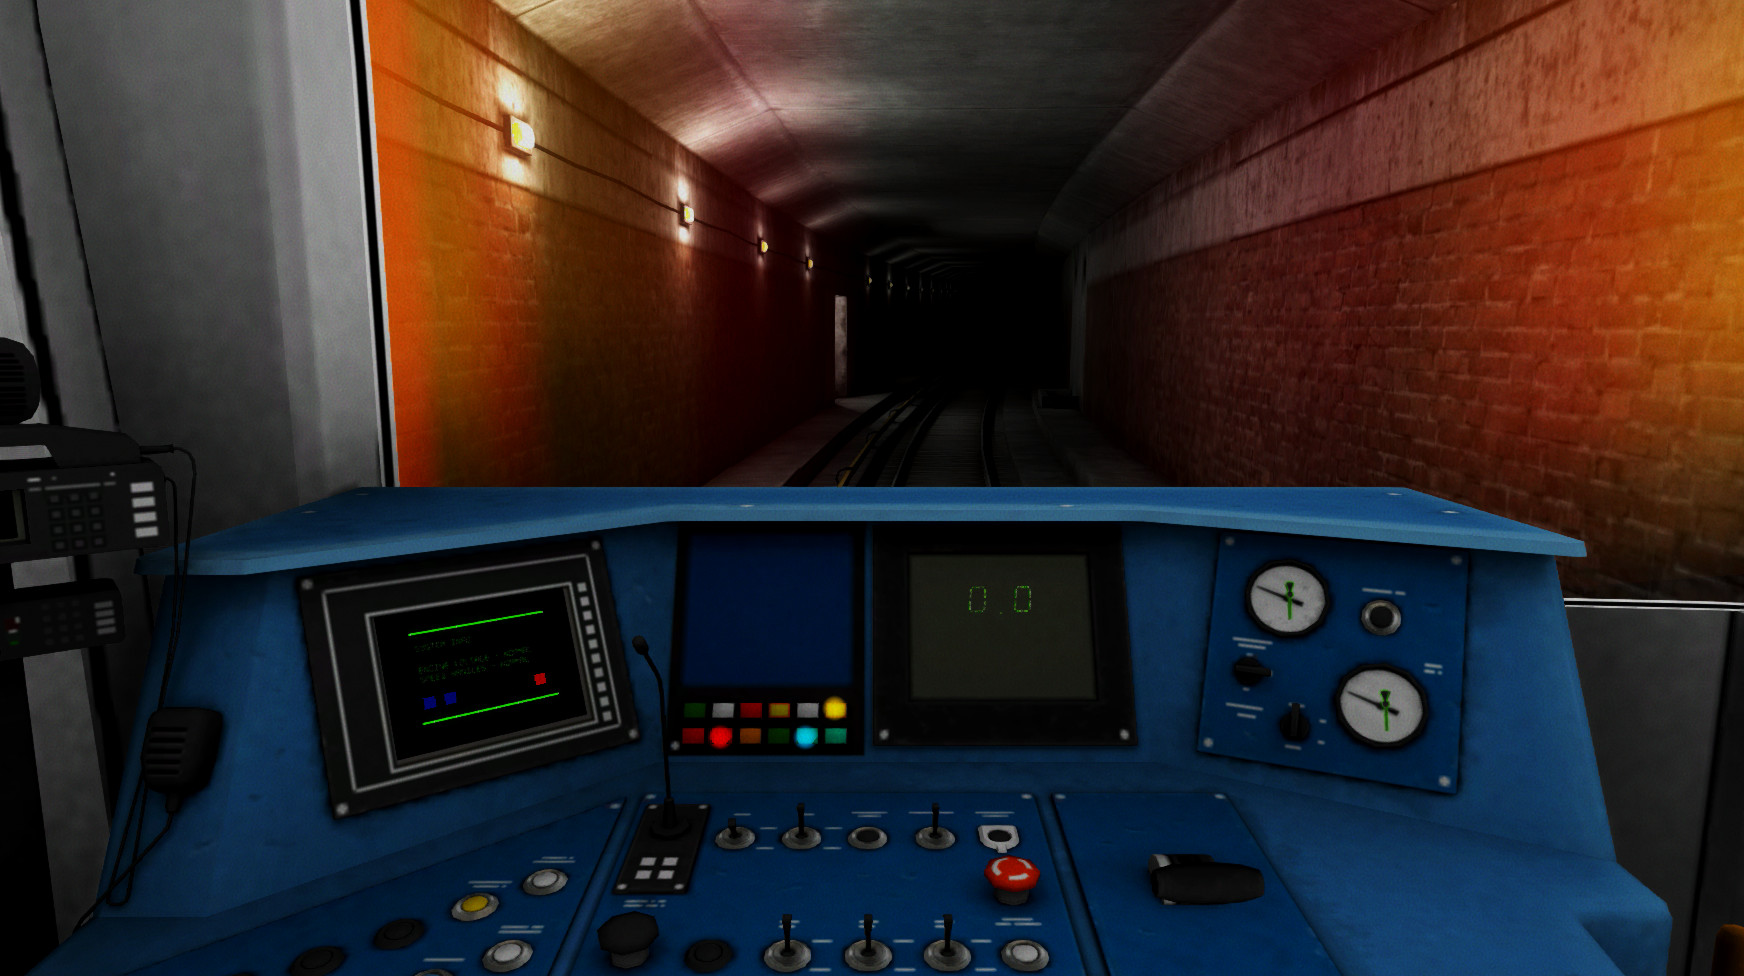 Find the best laptop for Subway Simulator